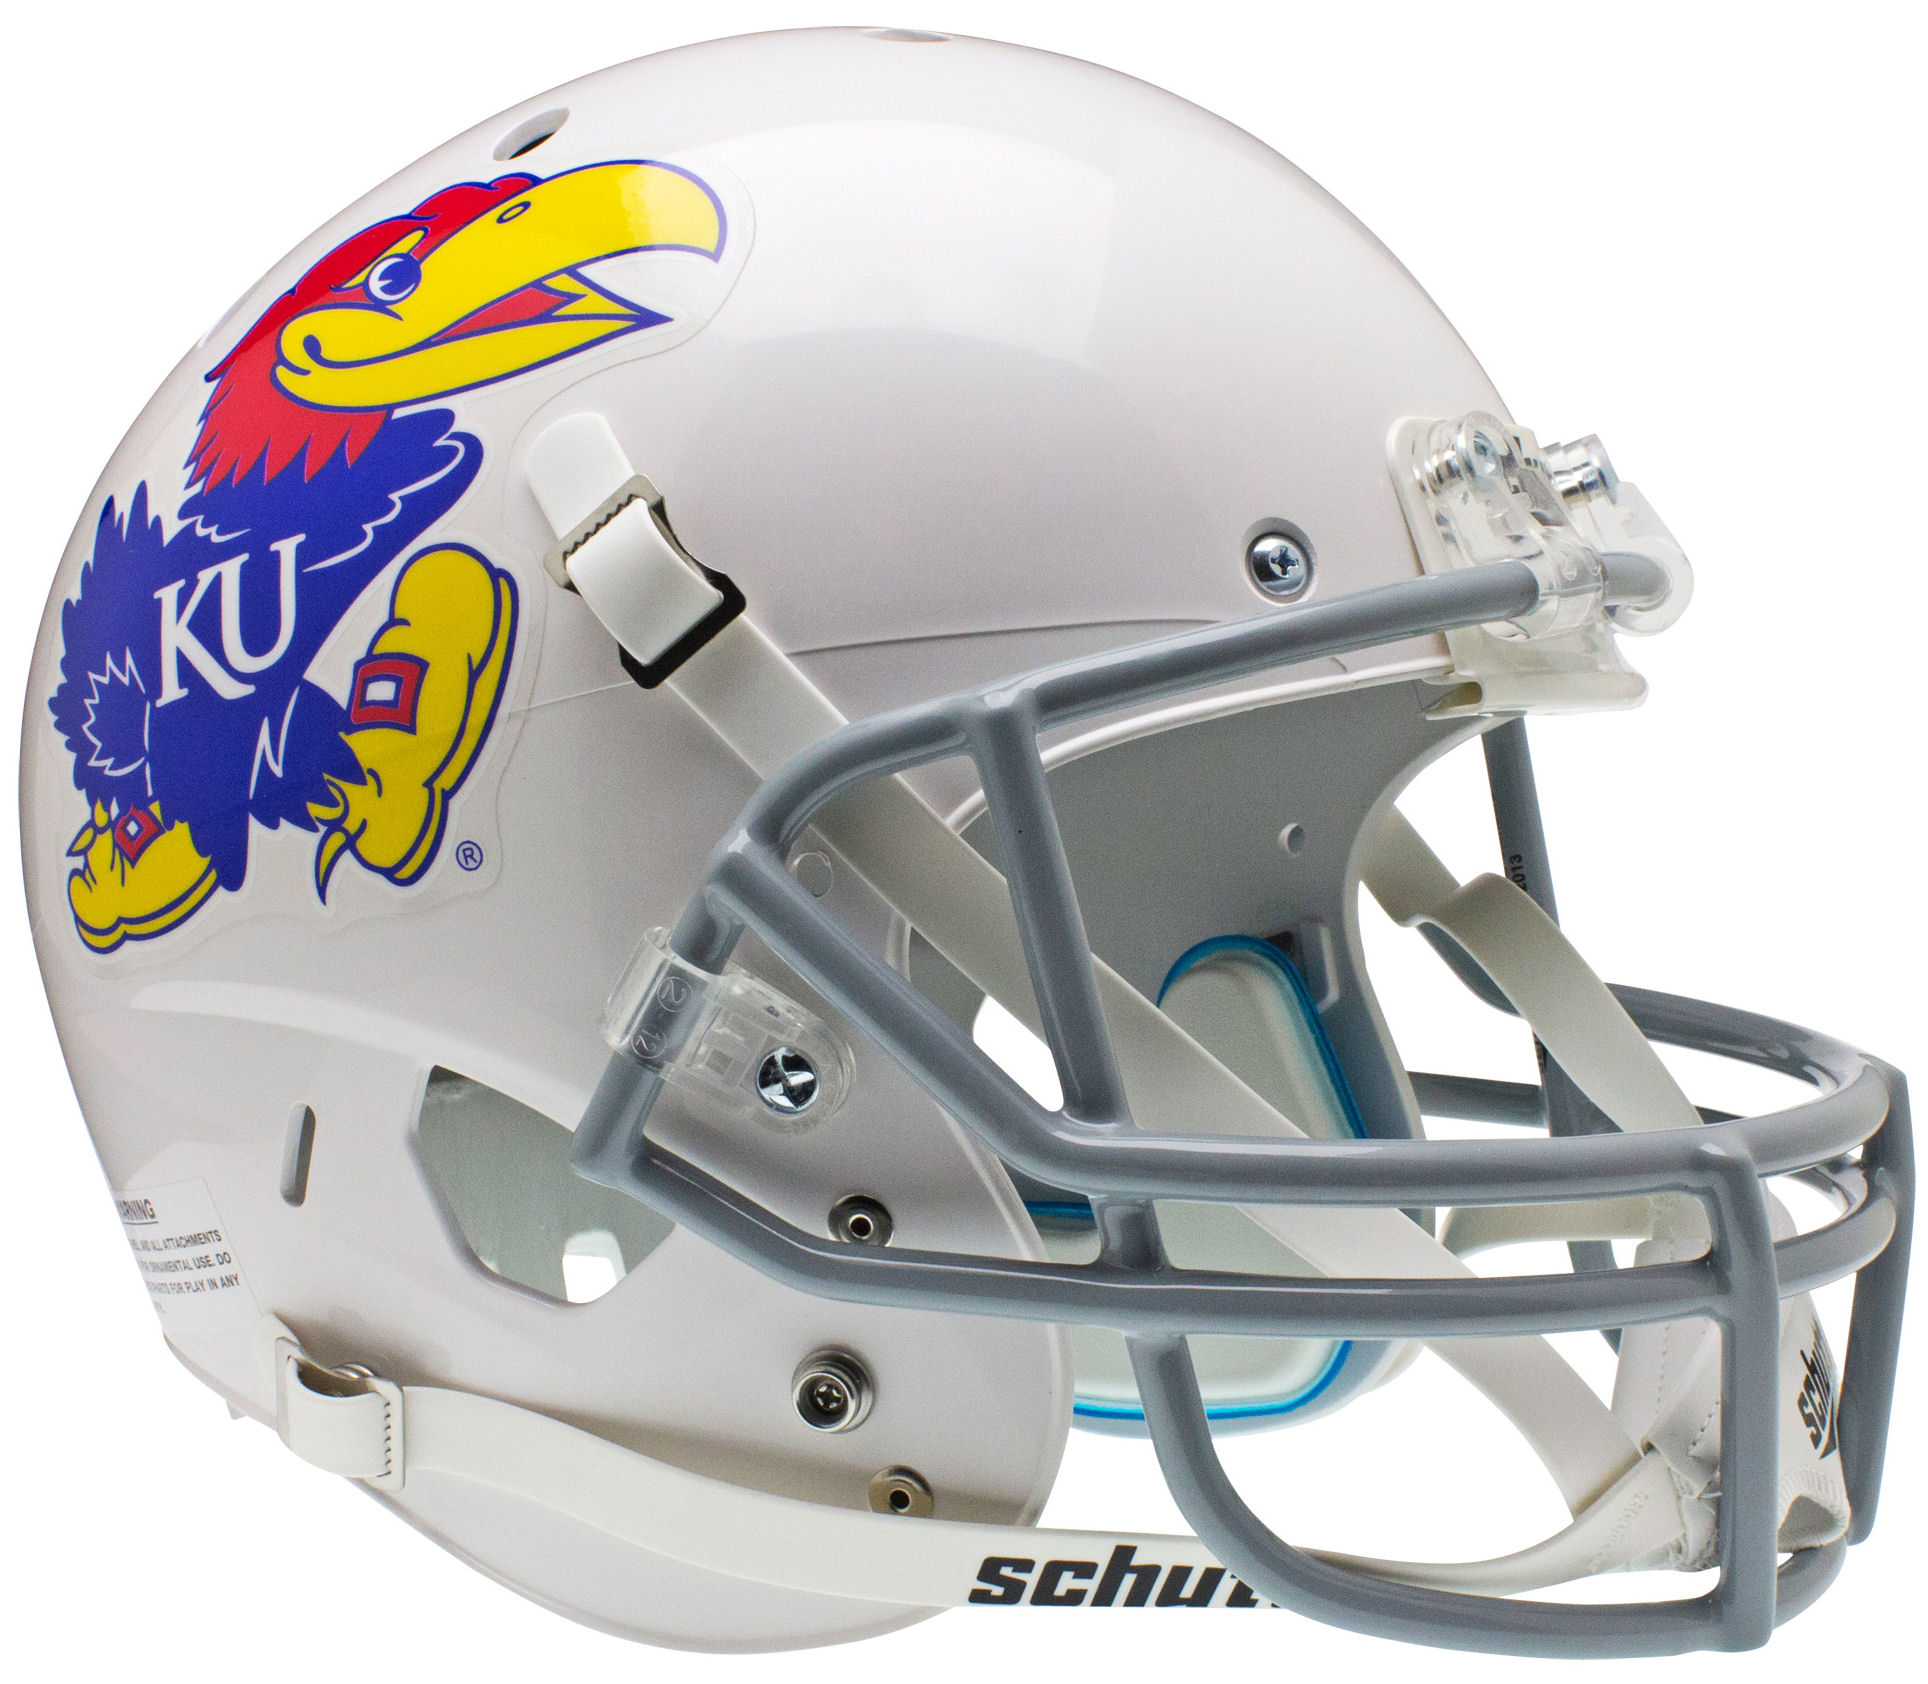 Kansas Jayhawks Full XP Replica Football Helmet Schutt <B>White</B>